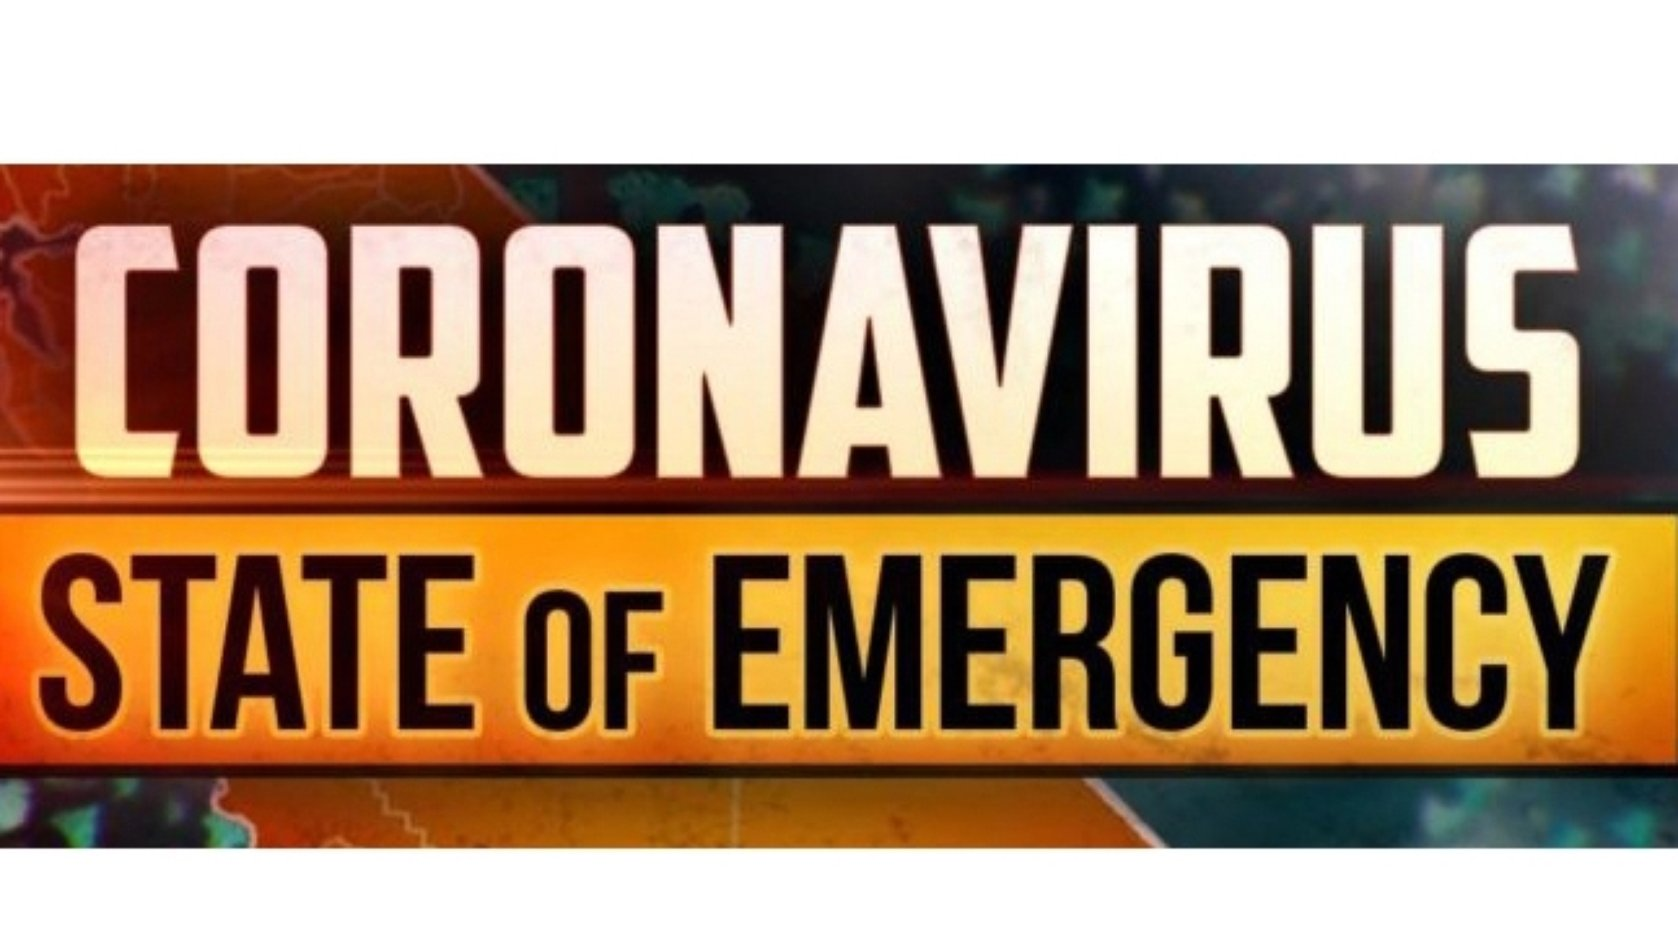 State of Emergency for COVID-19